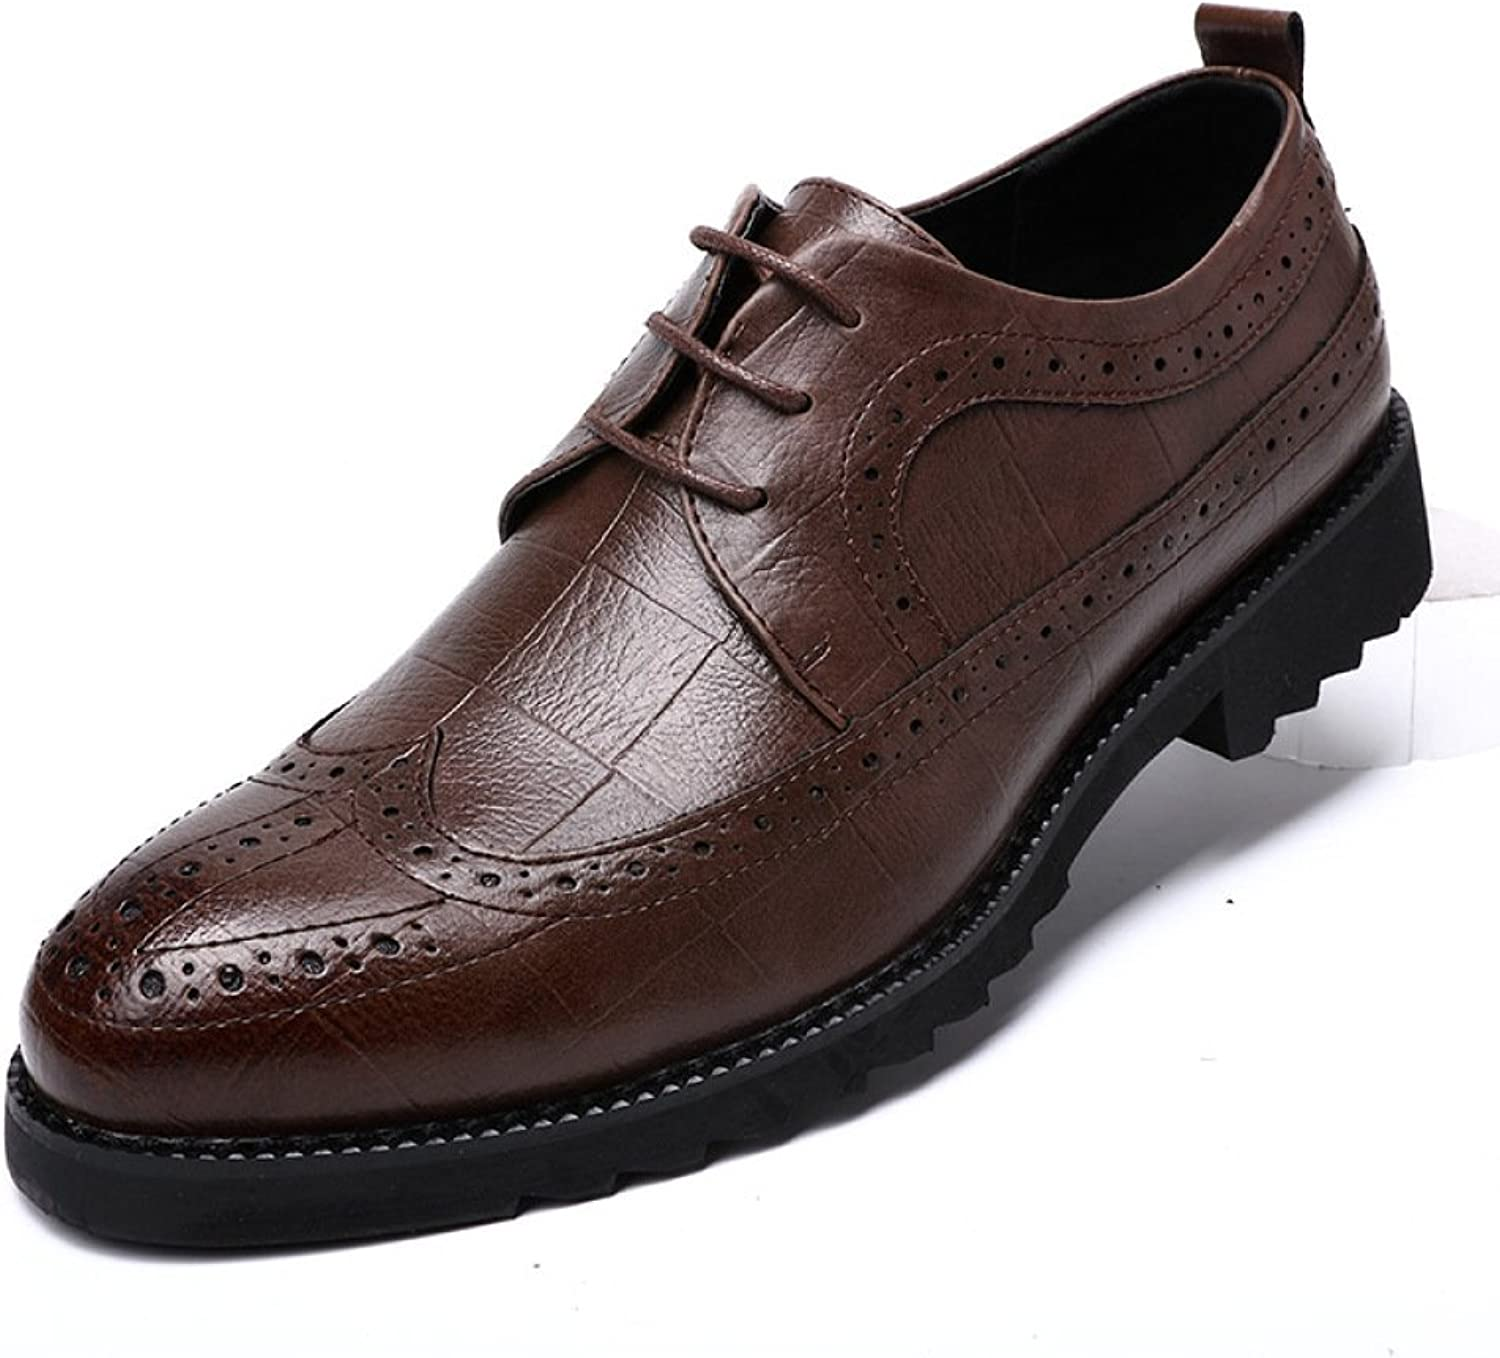 LQV Bullock Male shoes Carved England Dress Business shoes Casual shoes with Rubber Soles Non-Slip Comfort